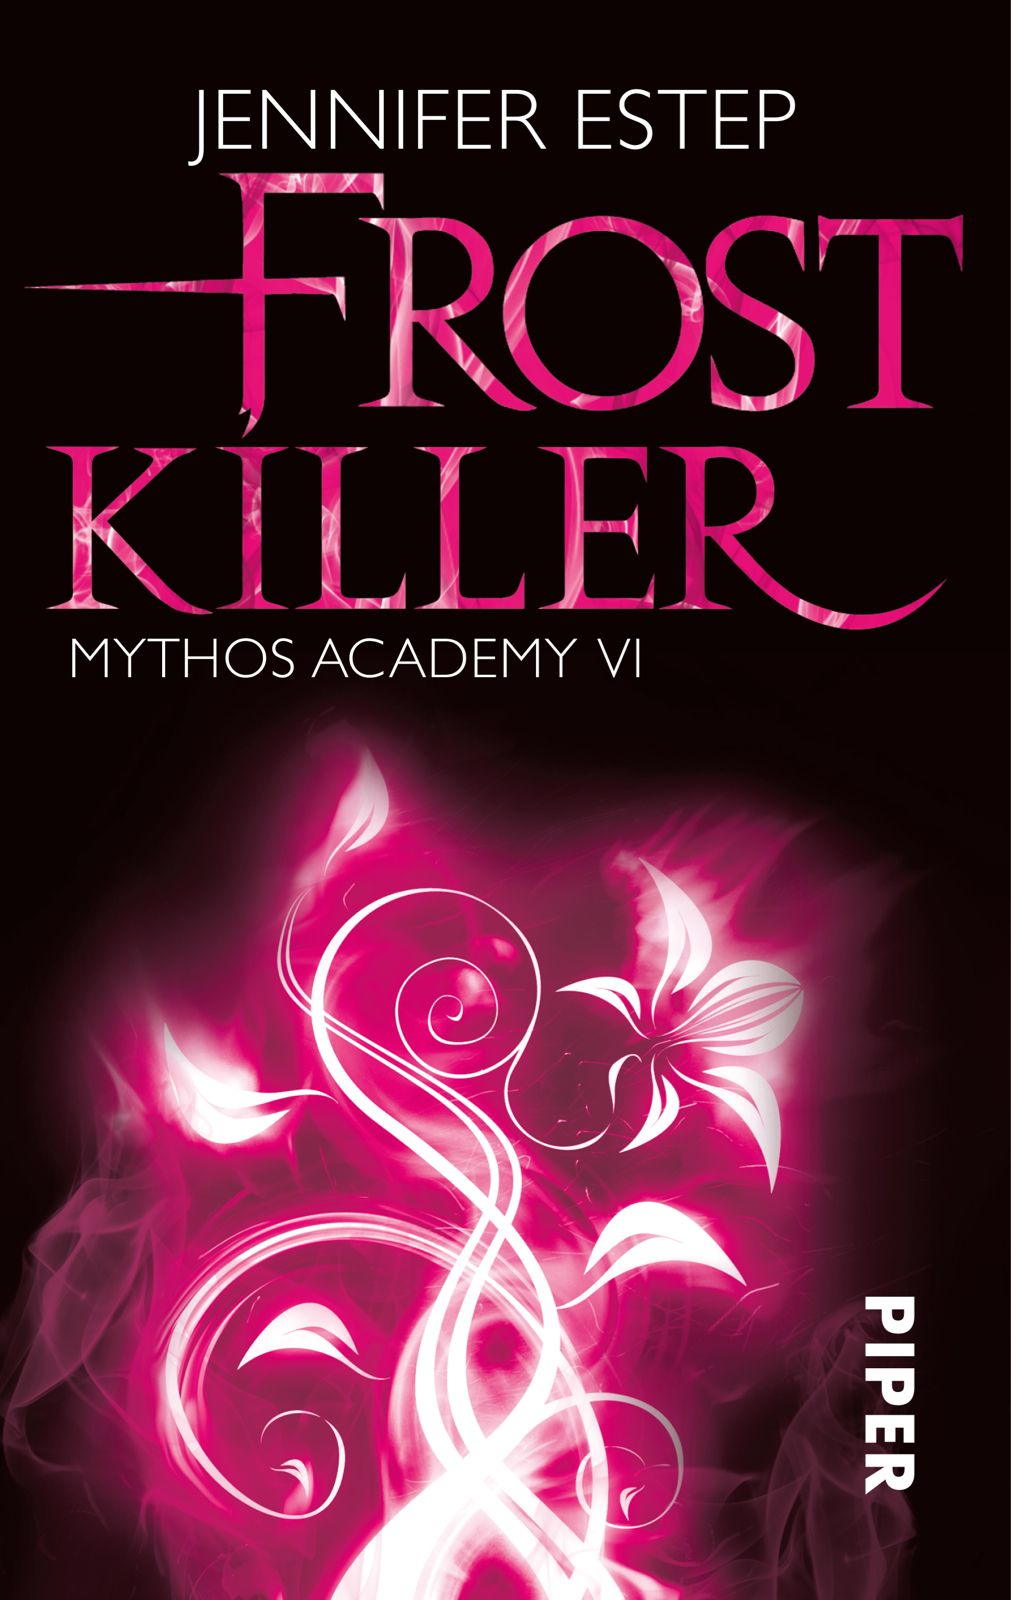 http://nothingbutn9erz.blogspot.co.at/2016/01/frostkiller-jennifer-estep-piper-rezension.html